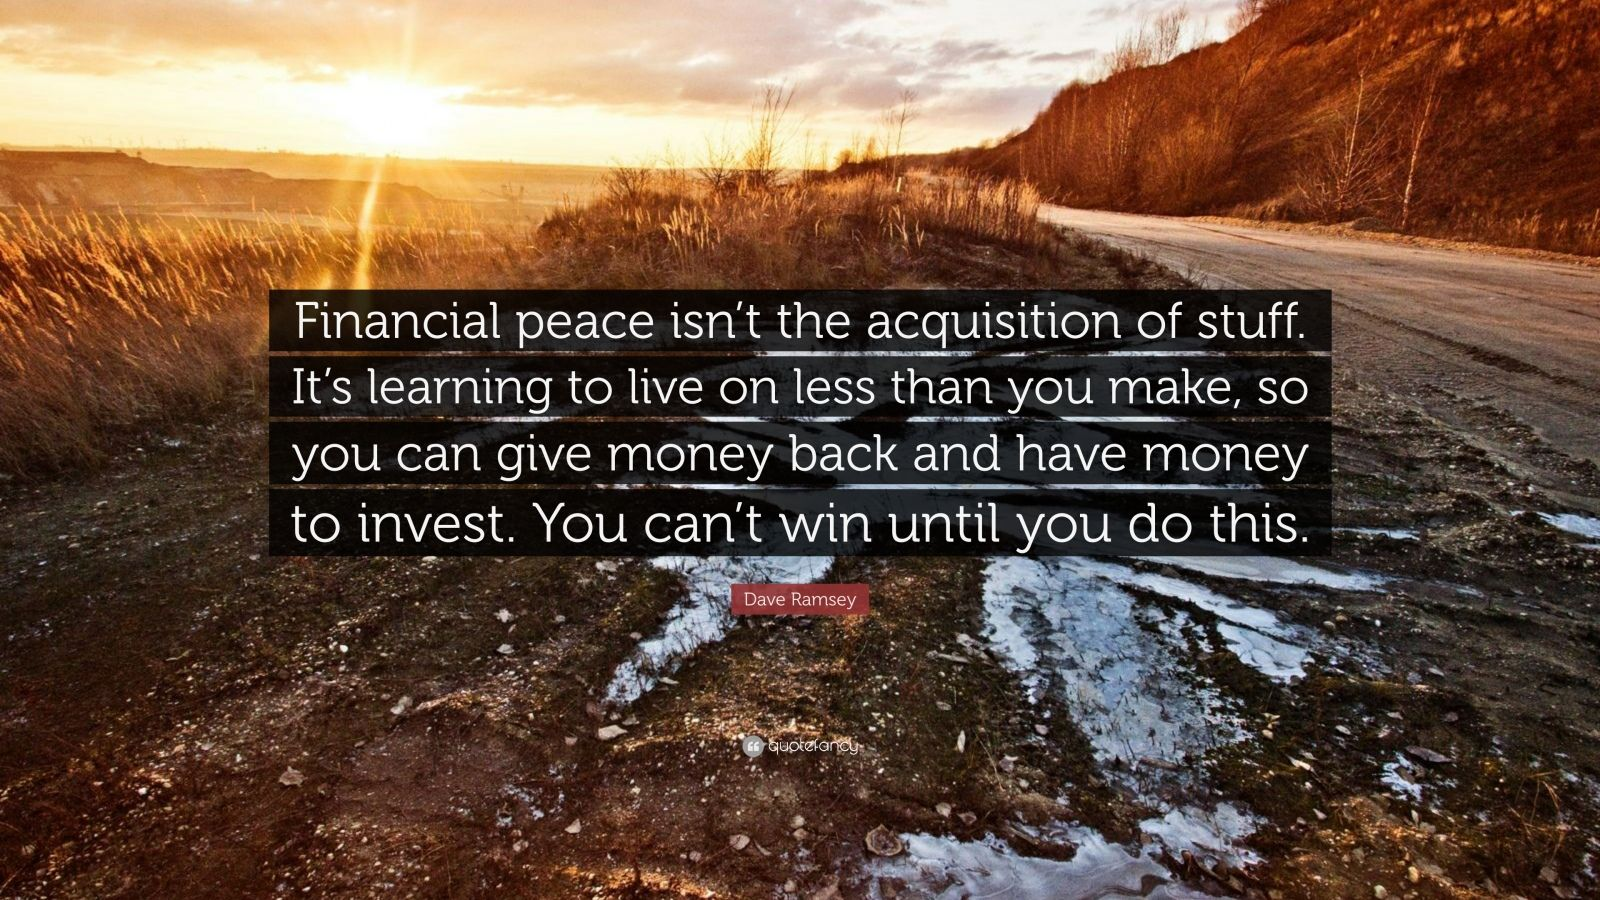 "Dave Ramsey Quote: ""Financial peace isn't the acquisition of stuff. It's learning to live on less than you make, so you can give money back and have money to invest. You can't win until you do this."""